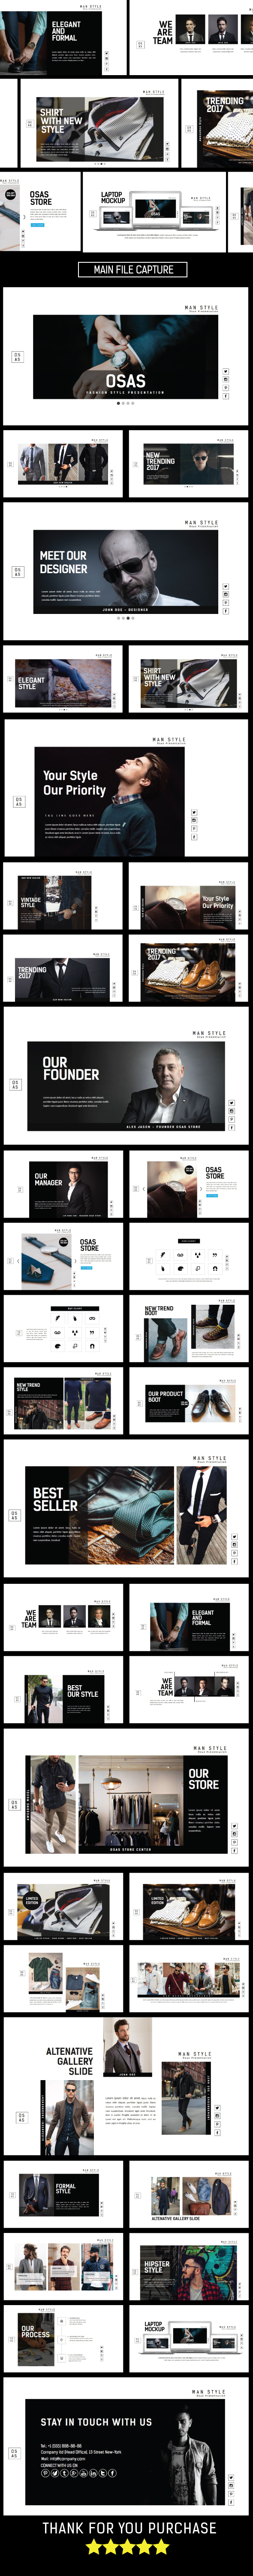 Osas fashion style powerpoint template powerpoint templates osas fashion style powerpoint template powerpoint templates presentation templates toneelgroepblik Images